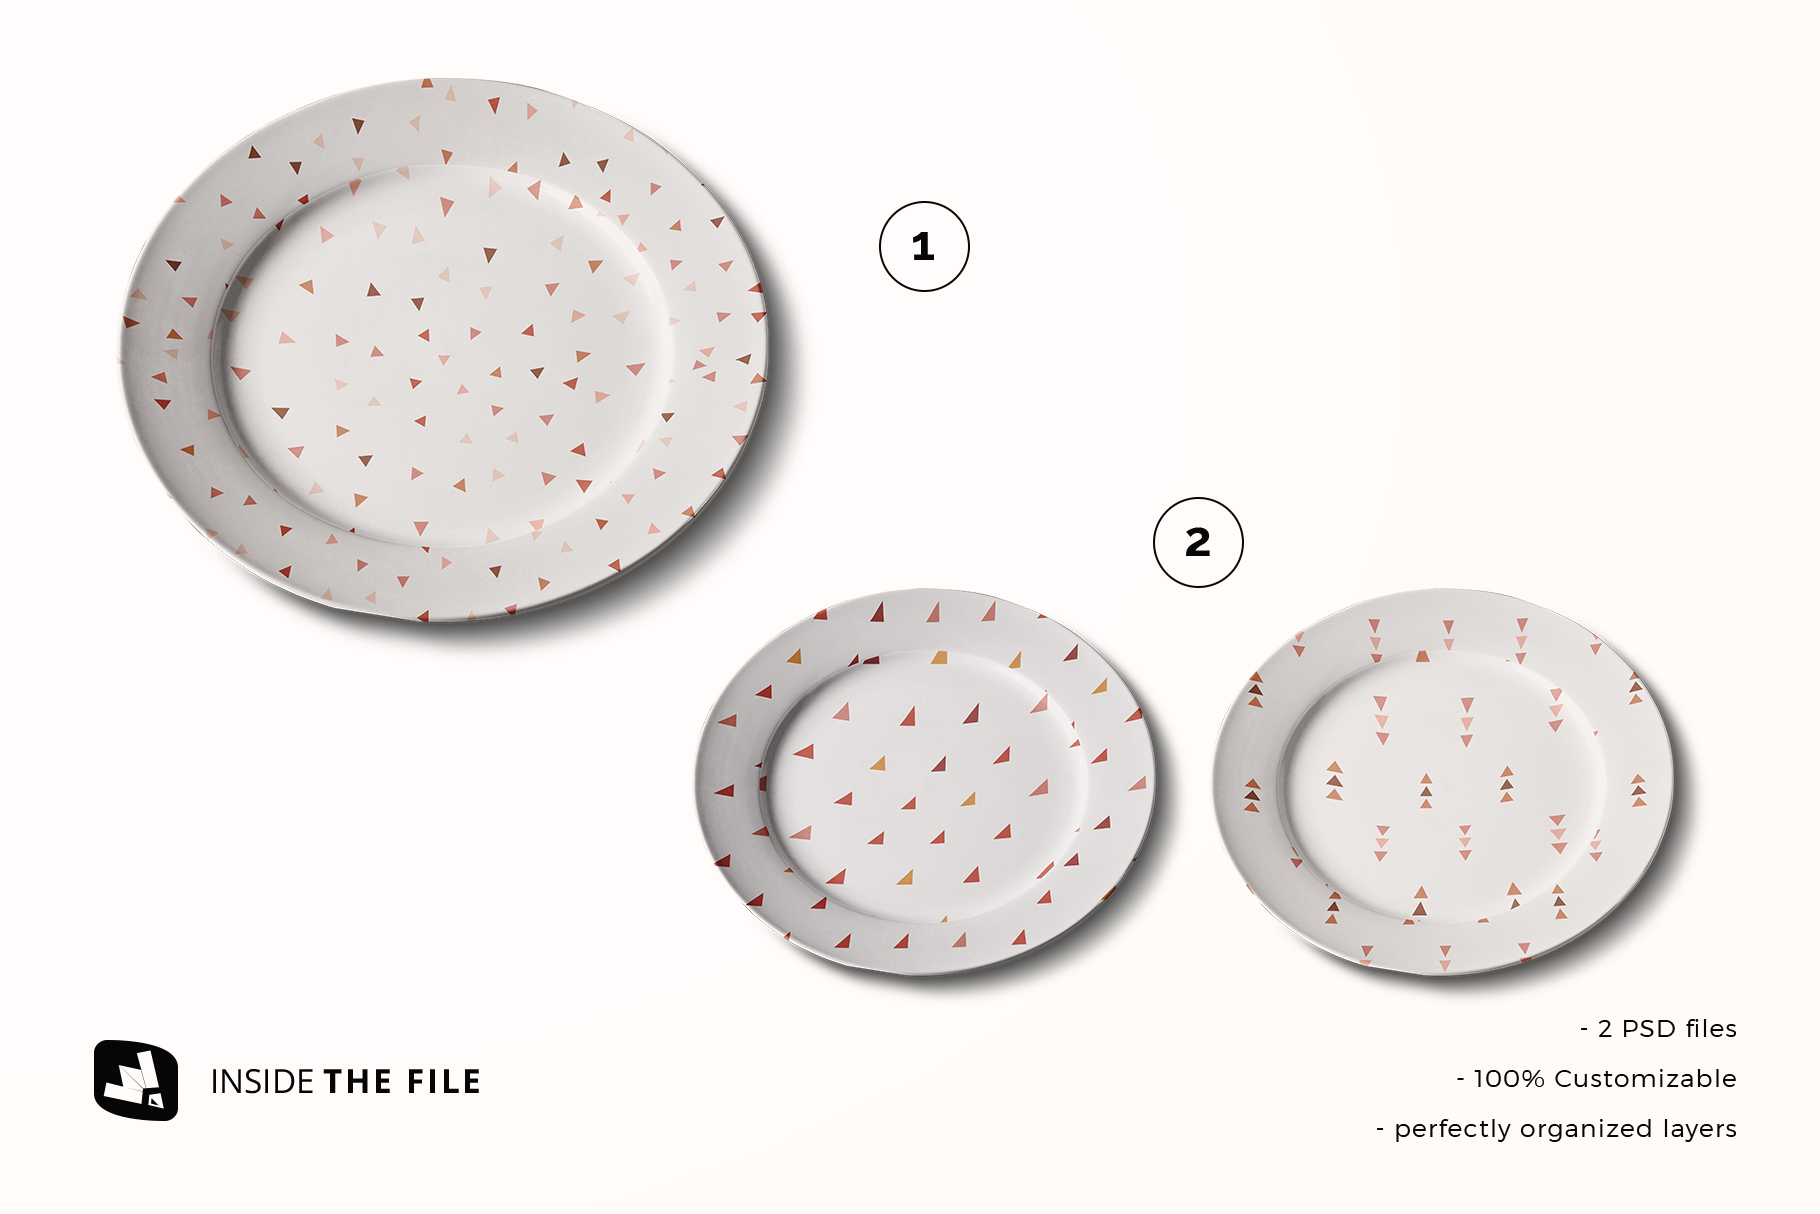 files included in the porcelain dinner plate mockup